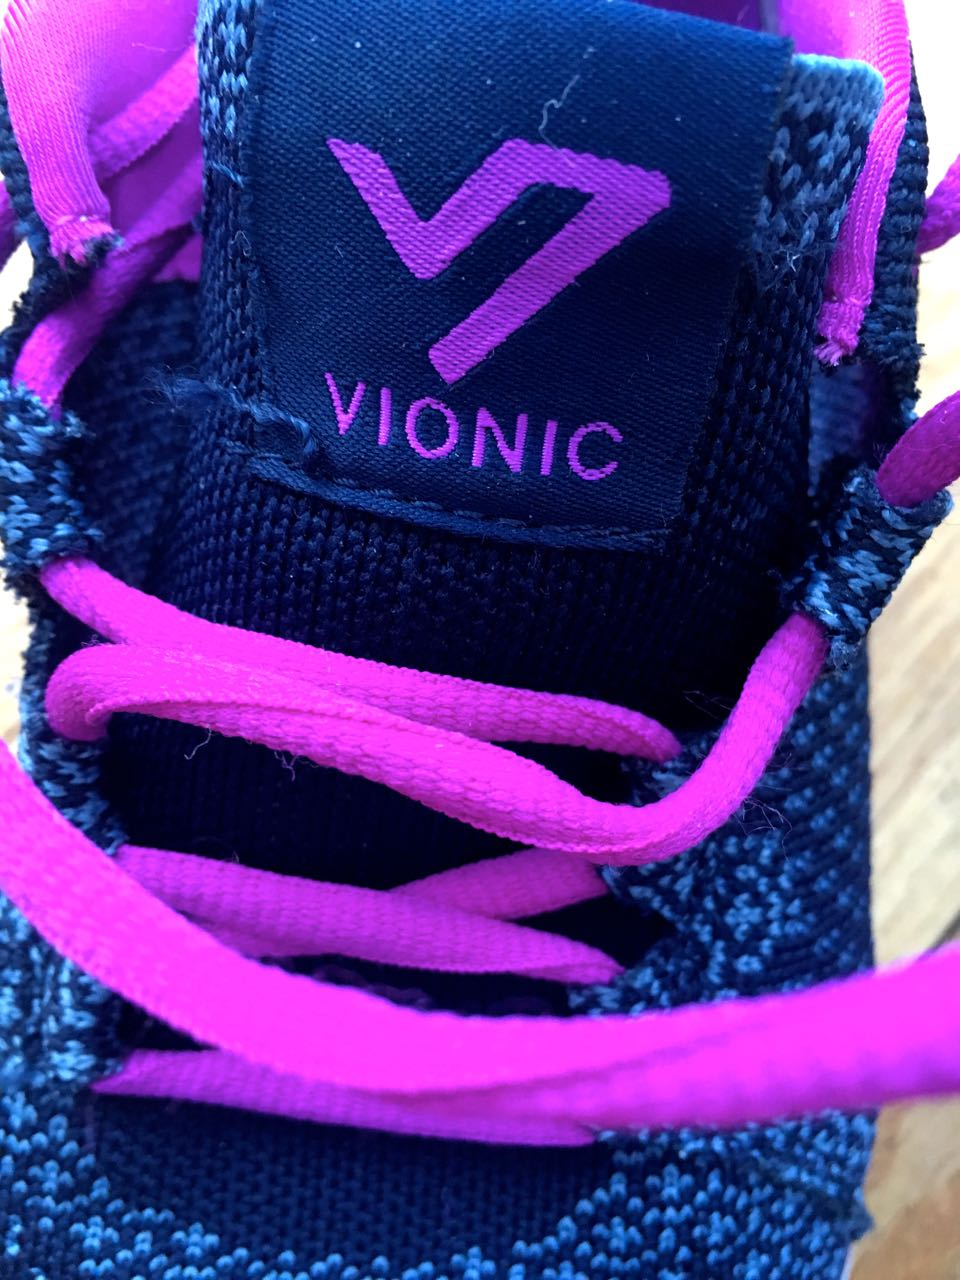 Pink laces on my Vionic trainers are certainly eye catching - but I wouldn't swap them